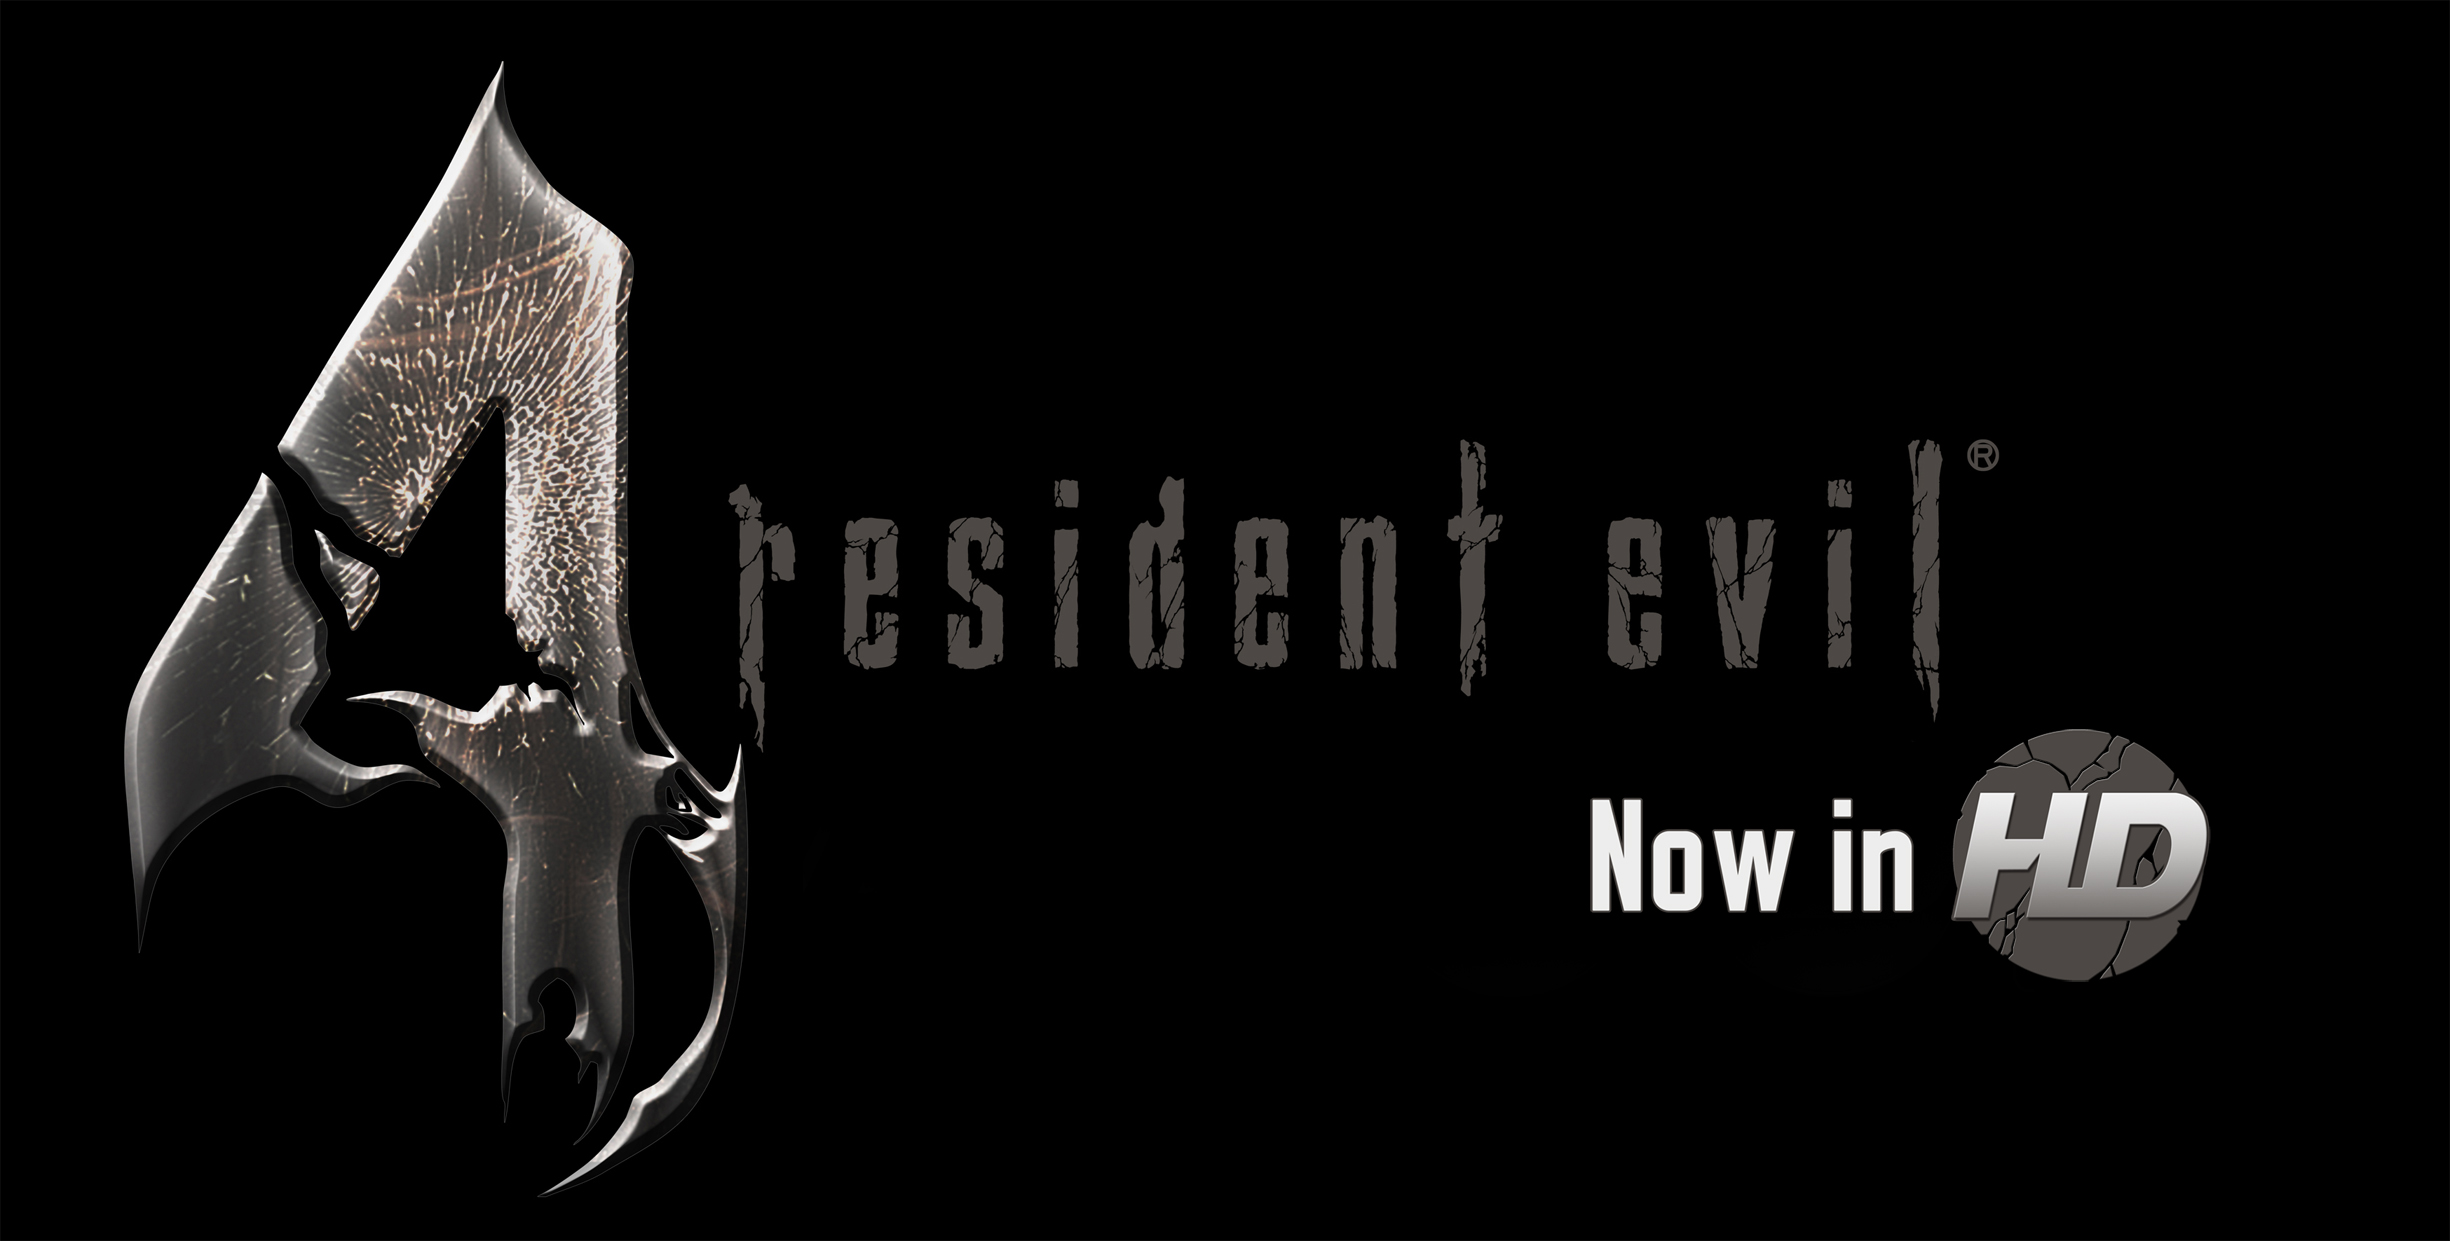 Resident Evil 4 and Code Veronica X coming to XBLA in HD